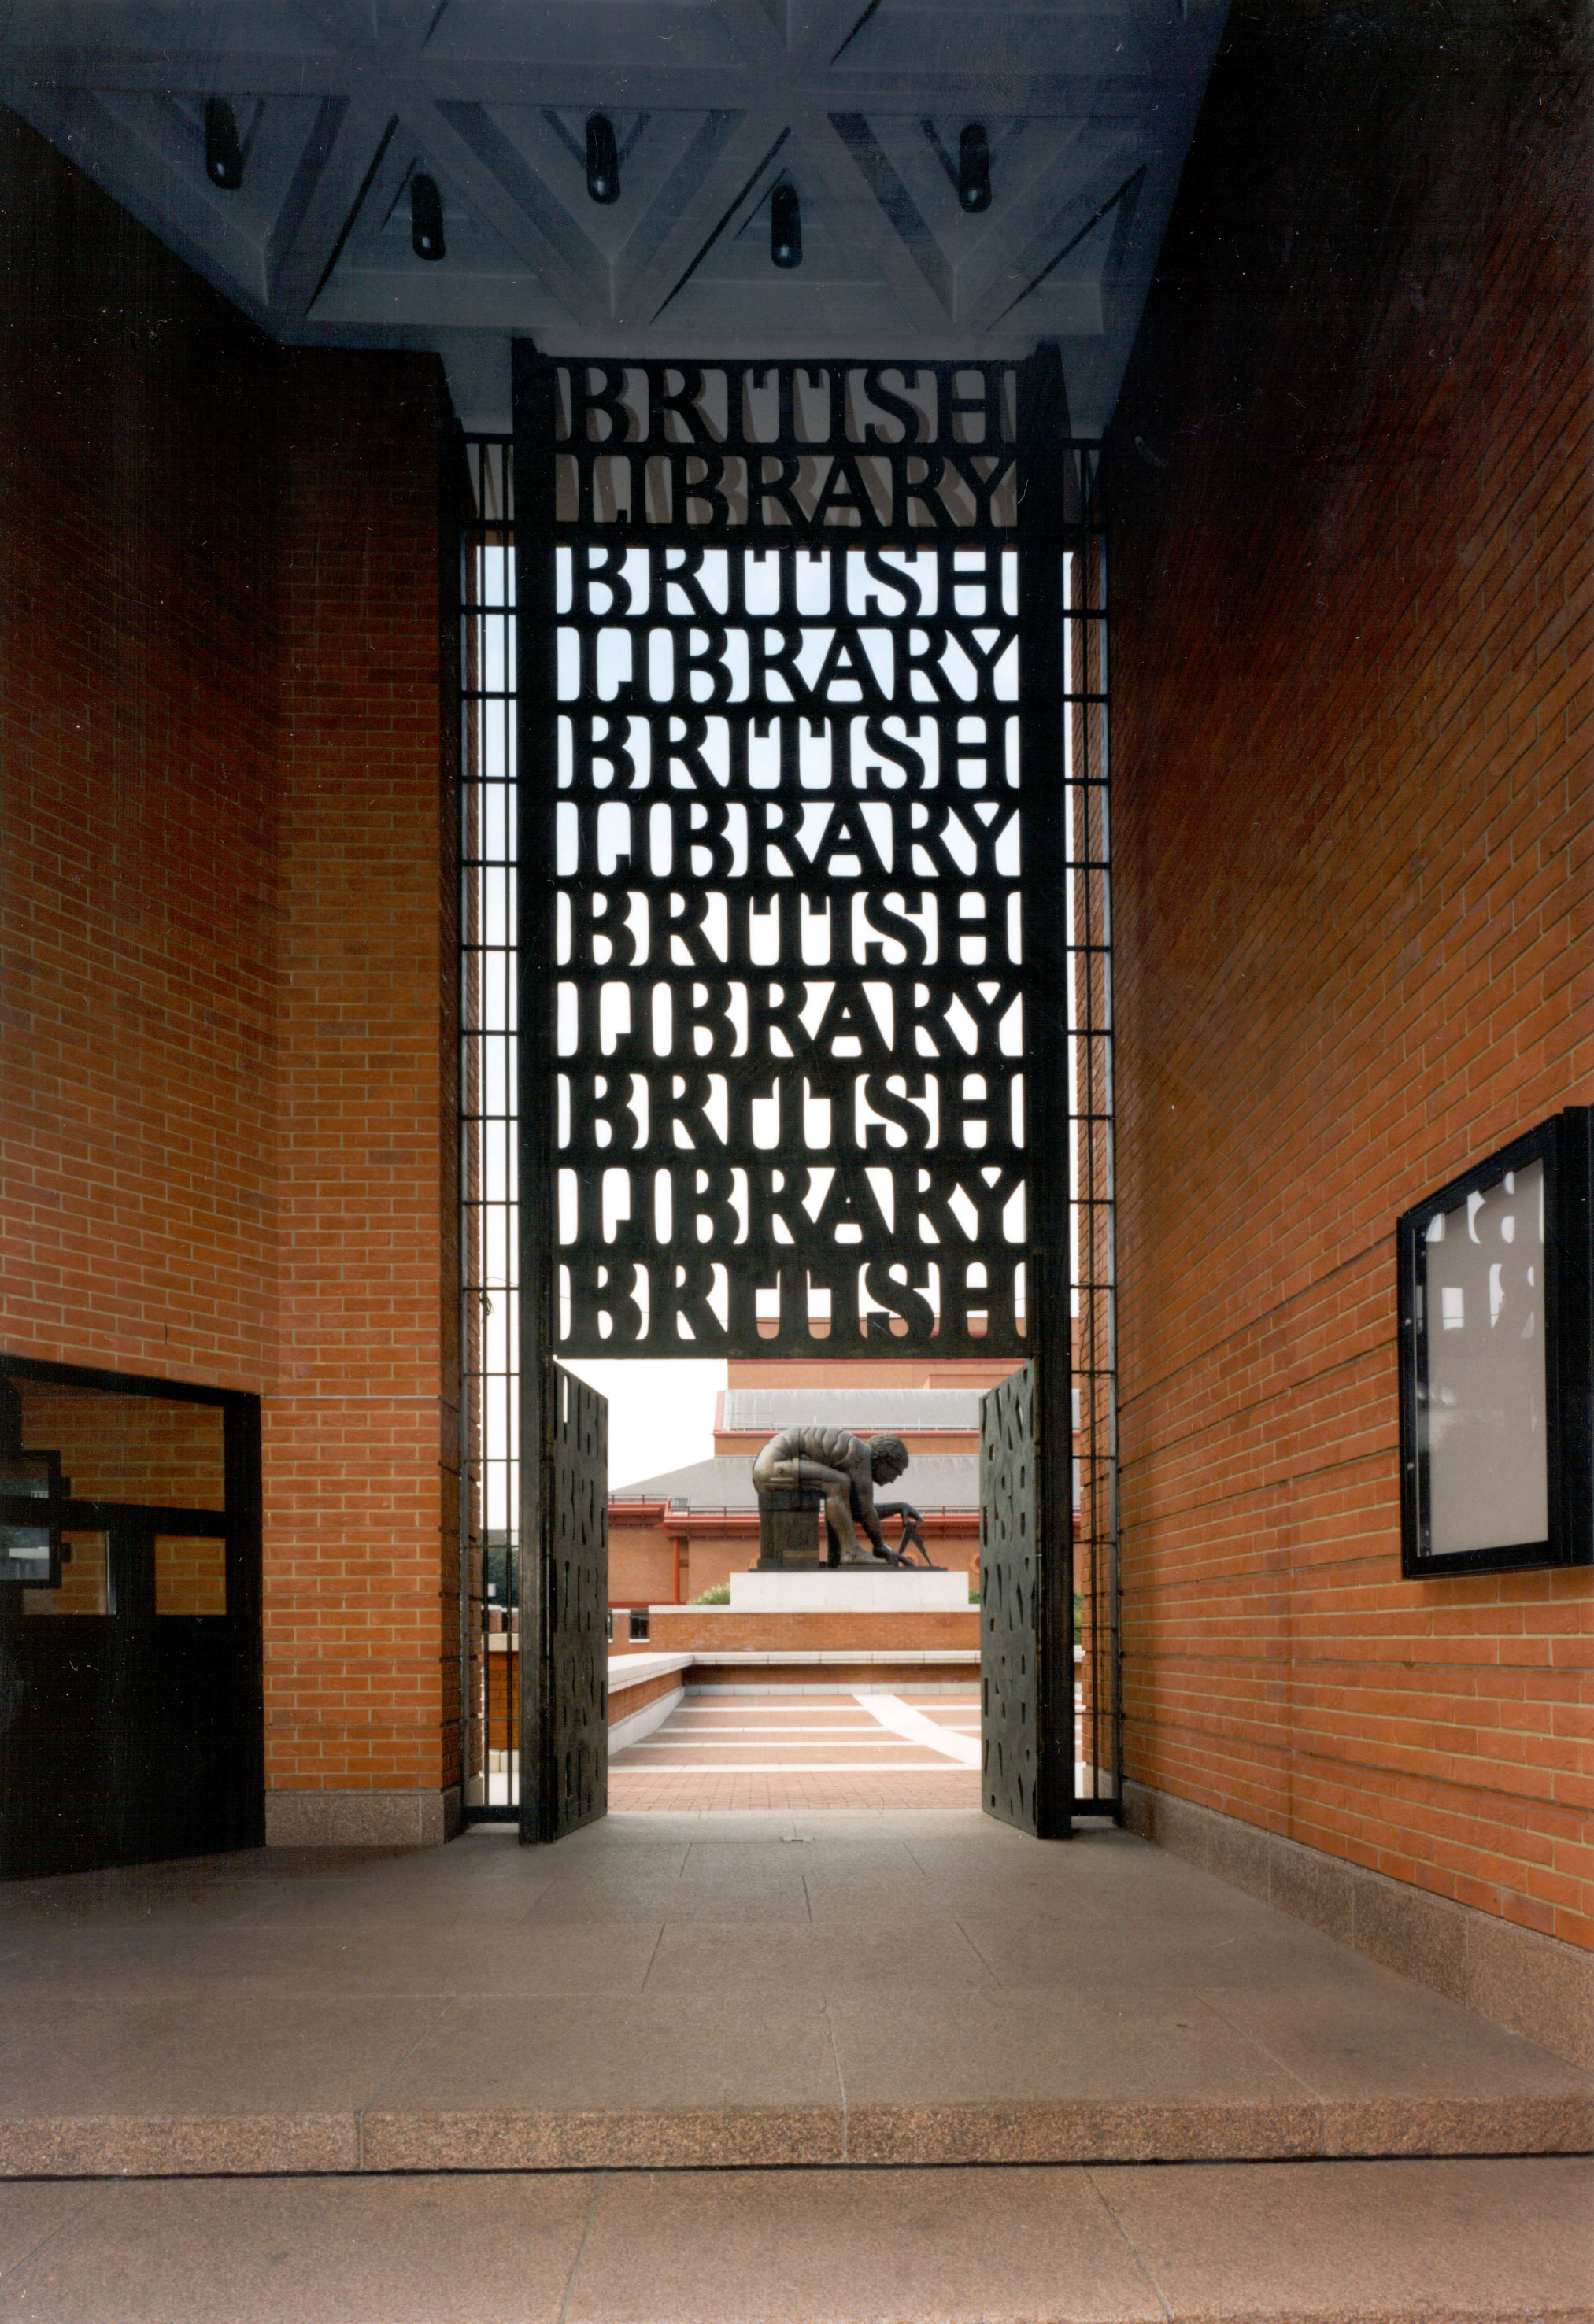 British Library Gates/Portico designed by Alphabetician, David Kindersley